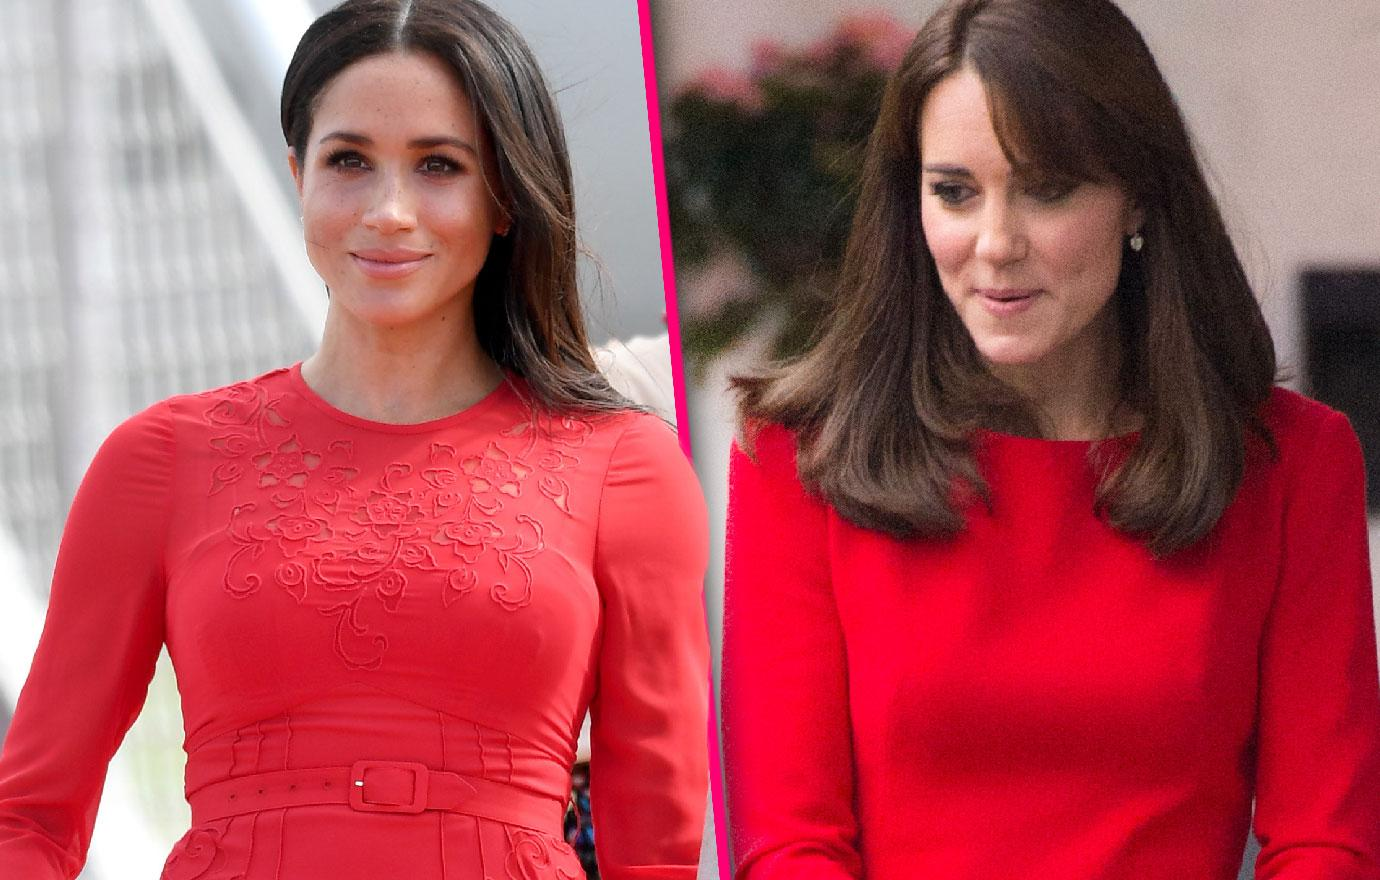 Palace Insiders Claim Meghan Markle Is Copying Kate Middleton's Fashion